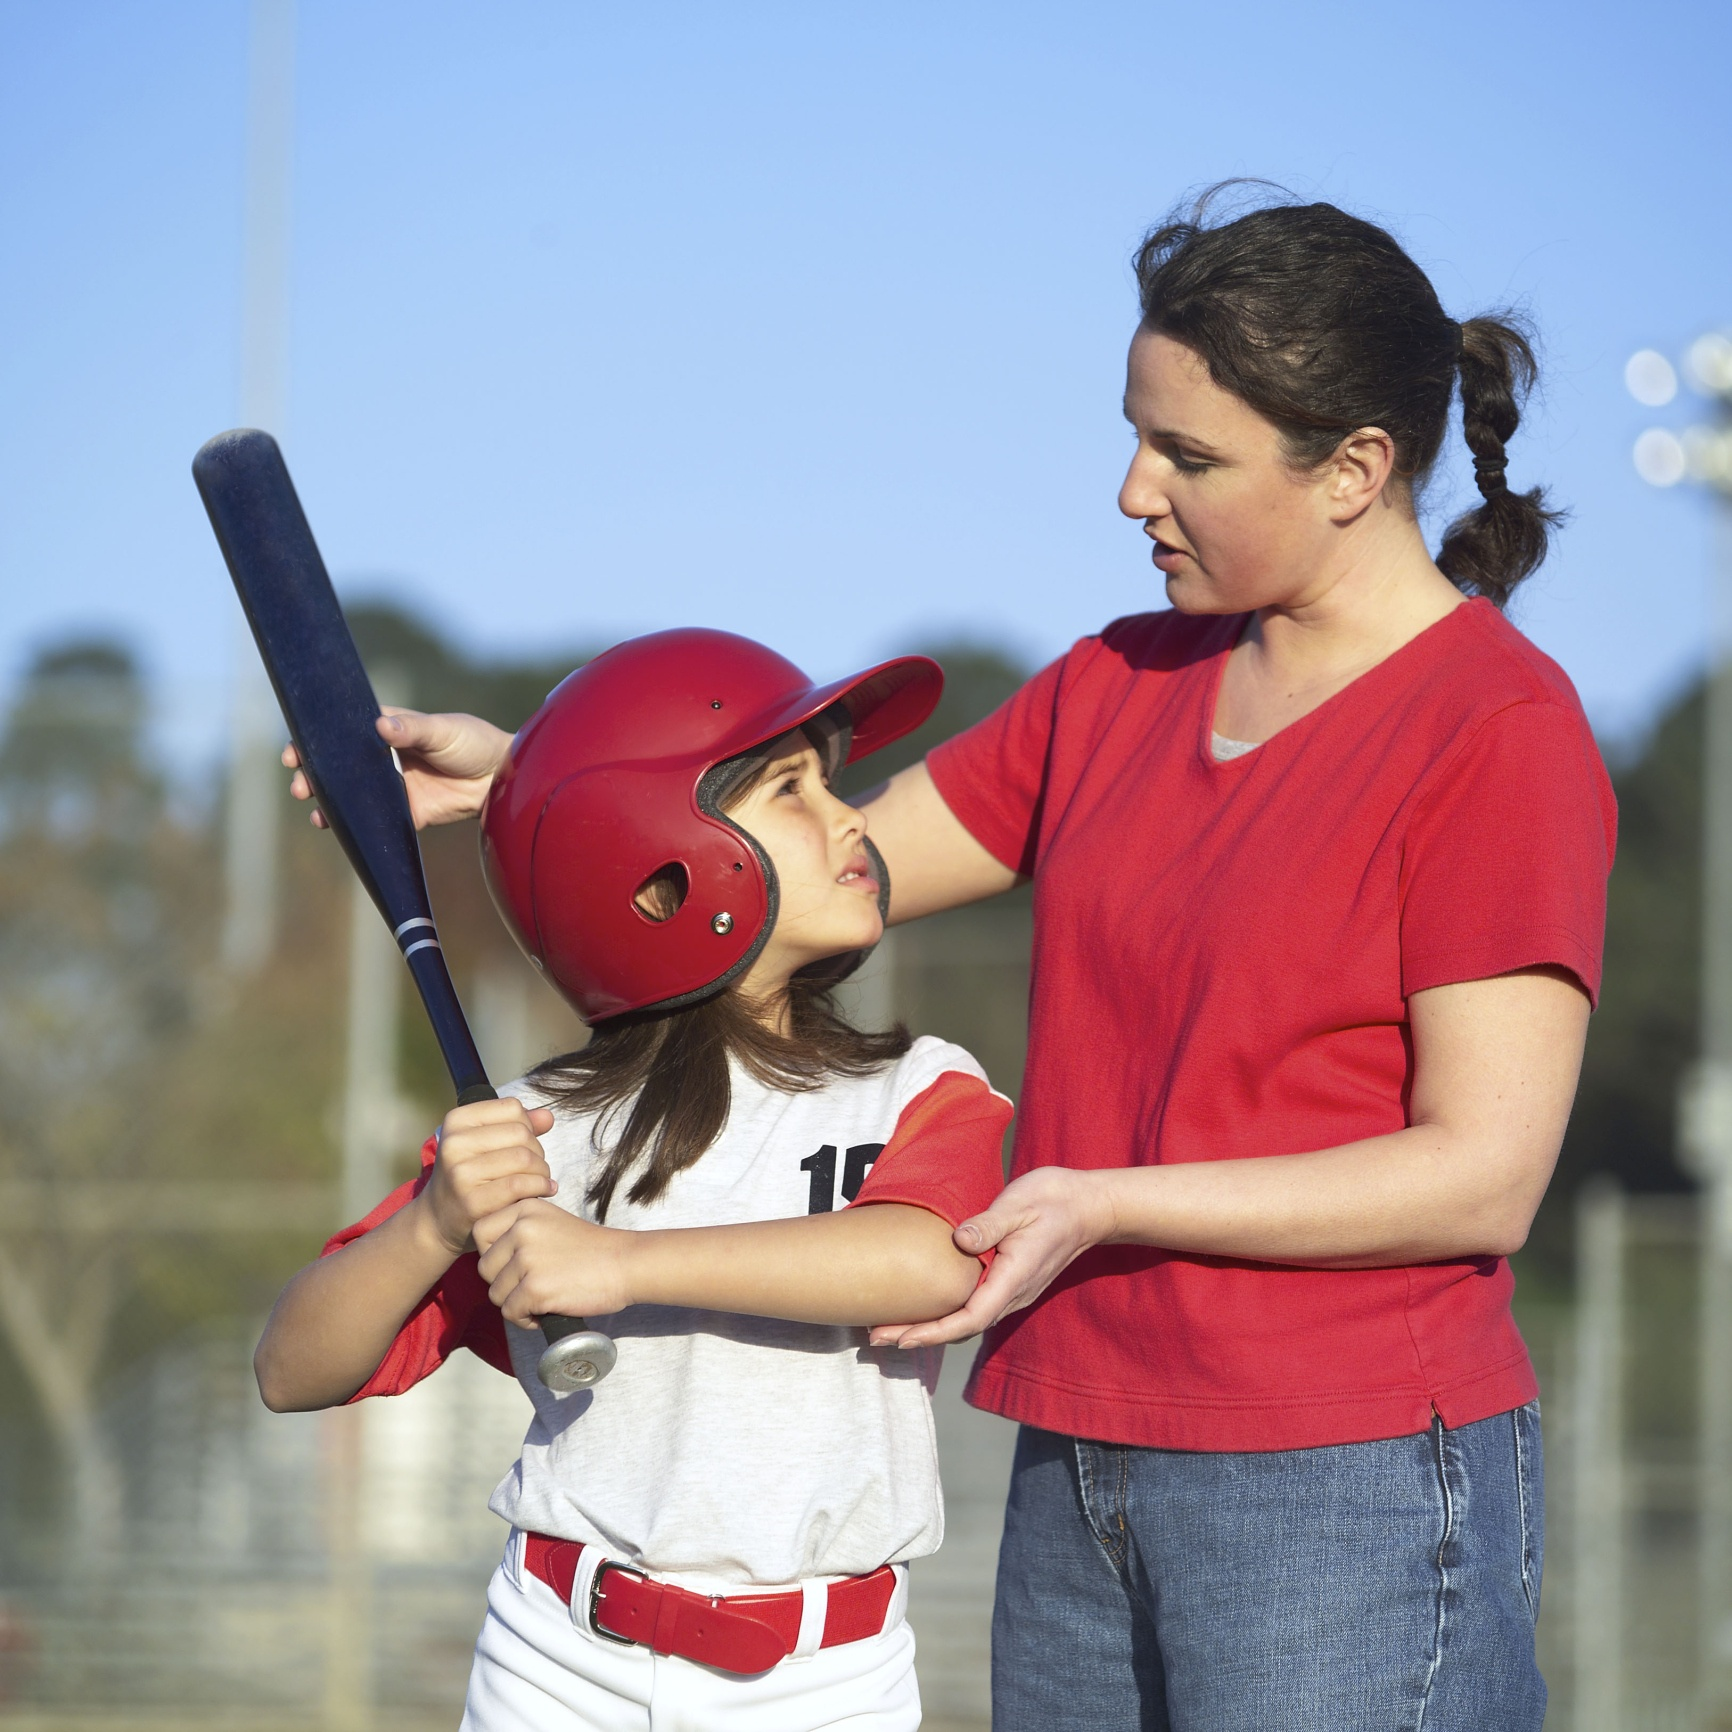 softball-coach-and-player.jpg